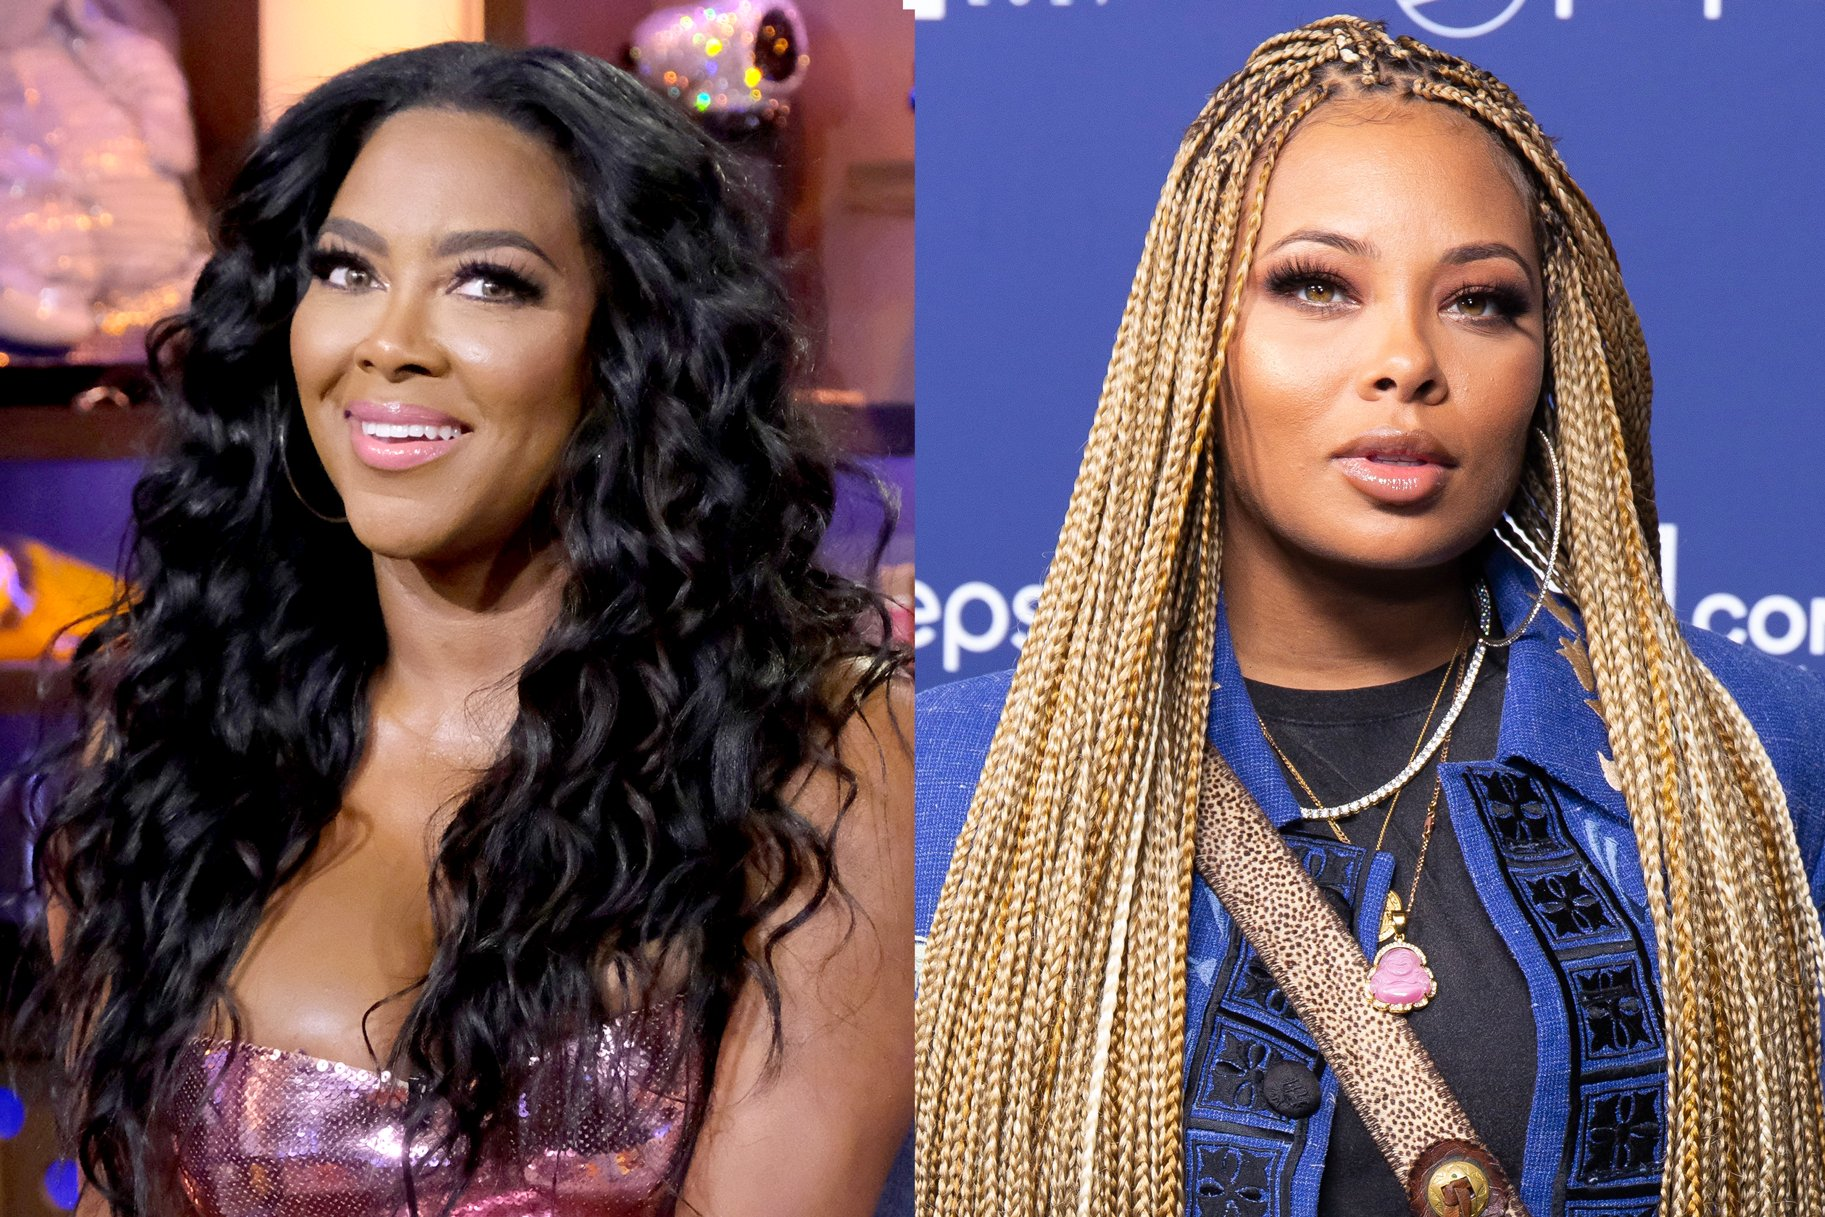 Eva Marcille Raises A Tough Issue And Kenya Moore Offers An Answer That Sparks Massive Debate